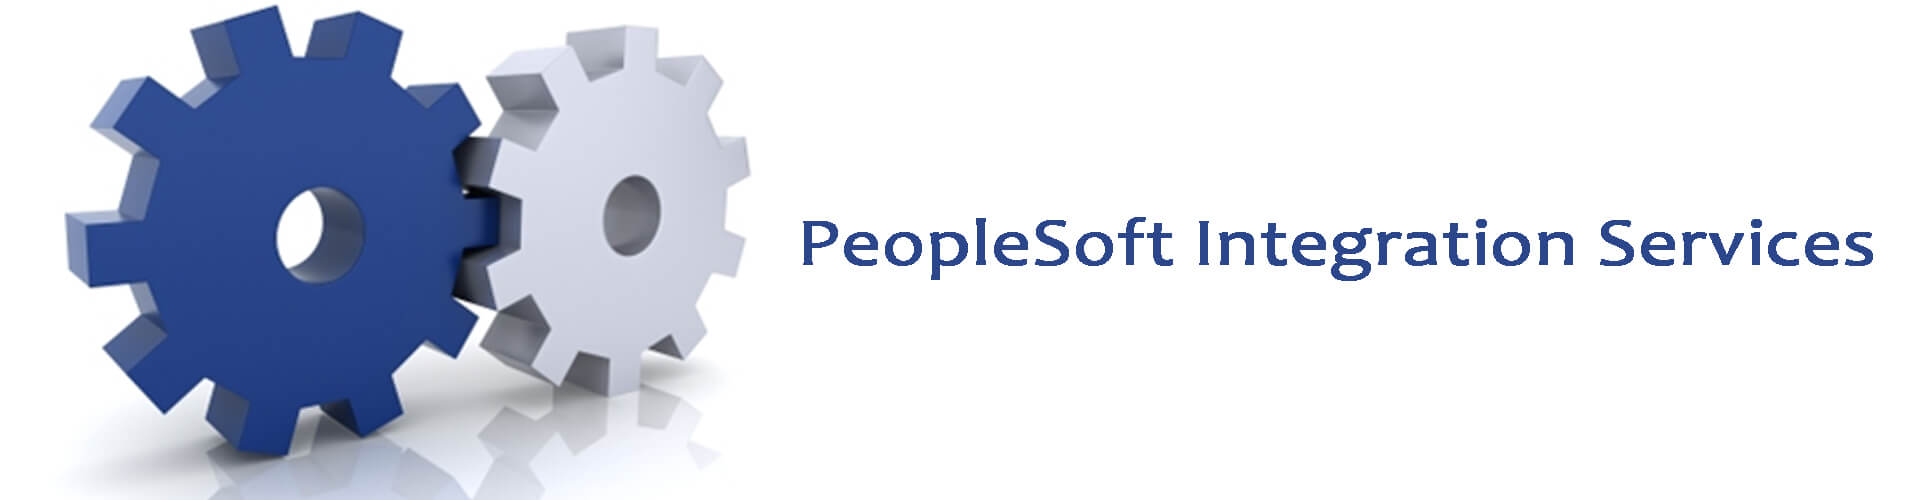 ORACLE PEOPLE SOFT INTEGRATION SERVICES